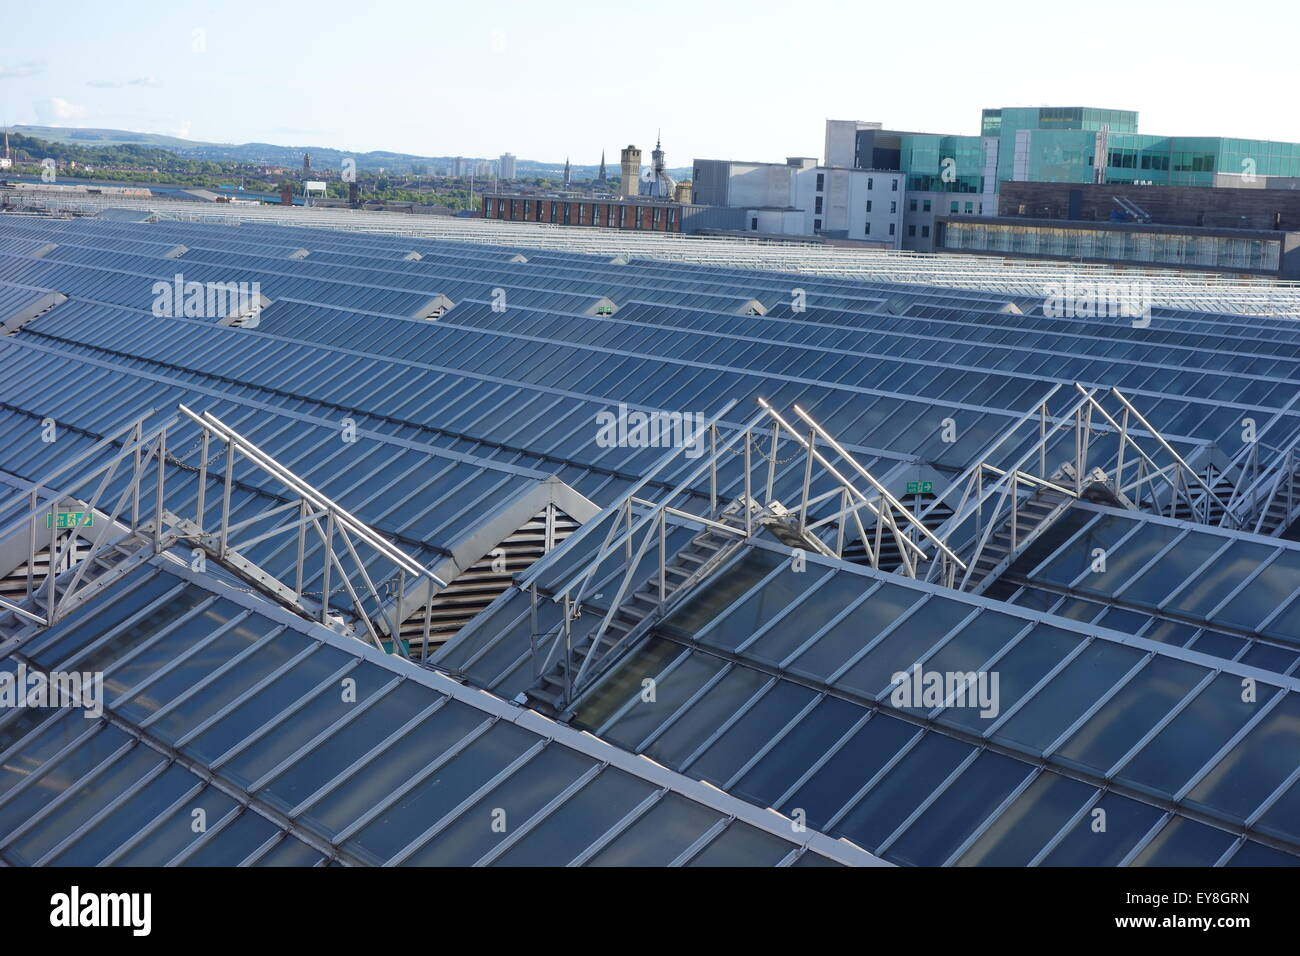 view over part of the roof of Glasgow Central station, largest glass roof in Europe - Stock Image